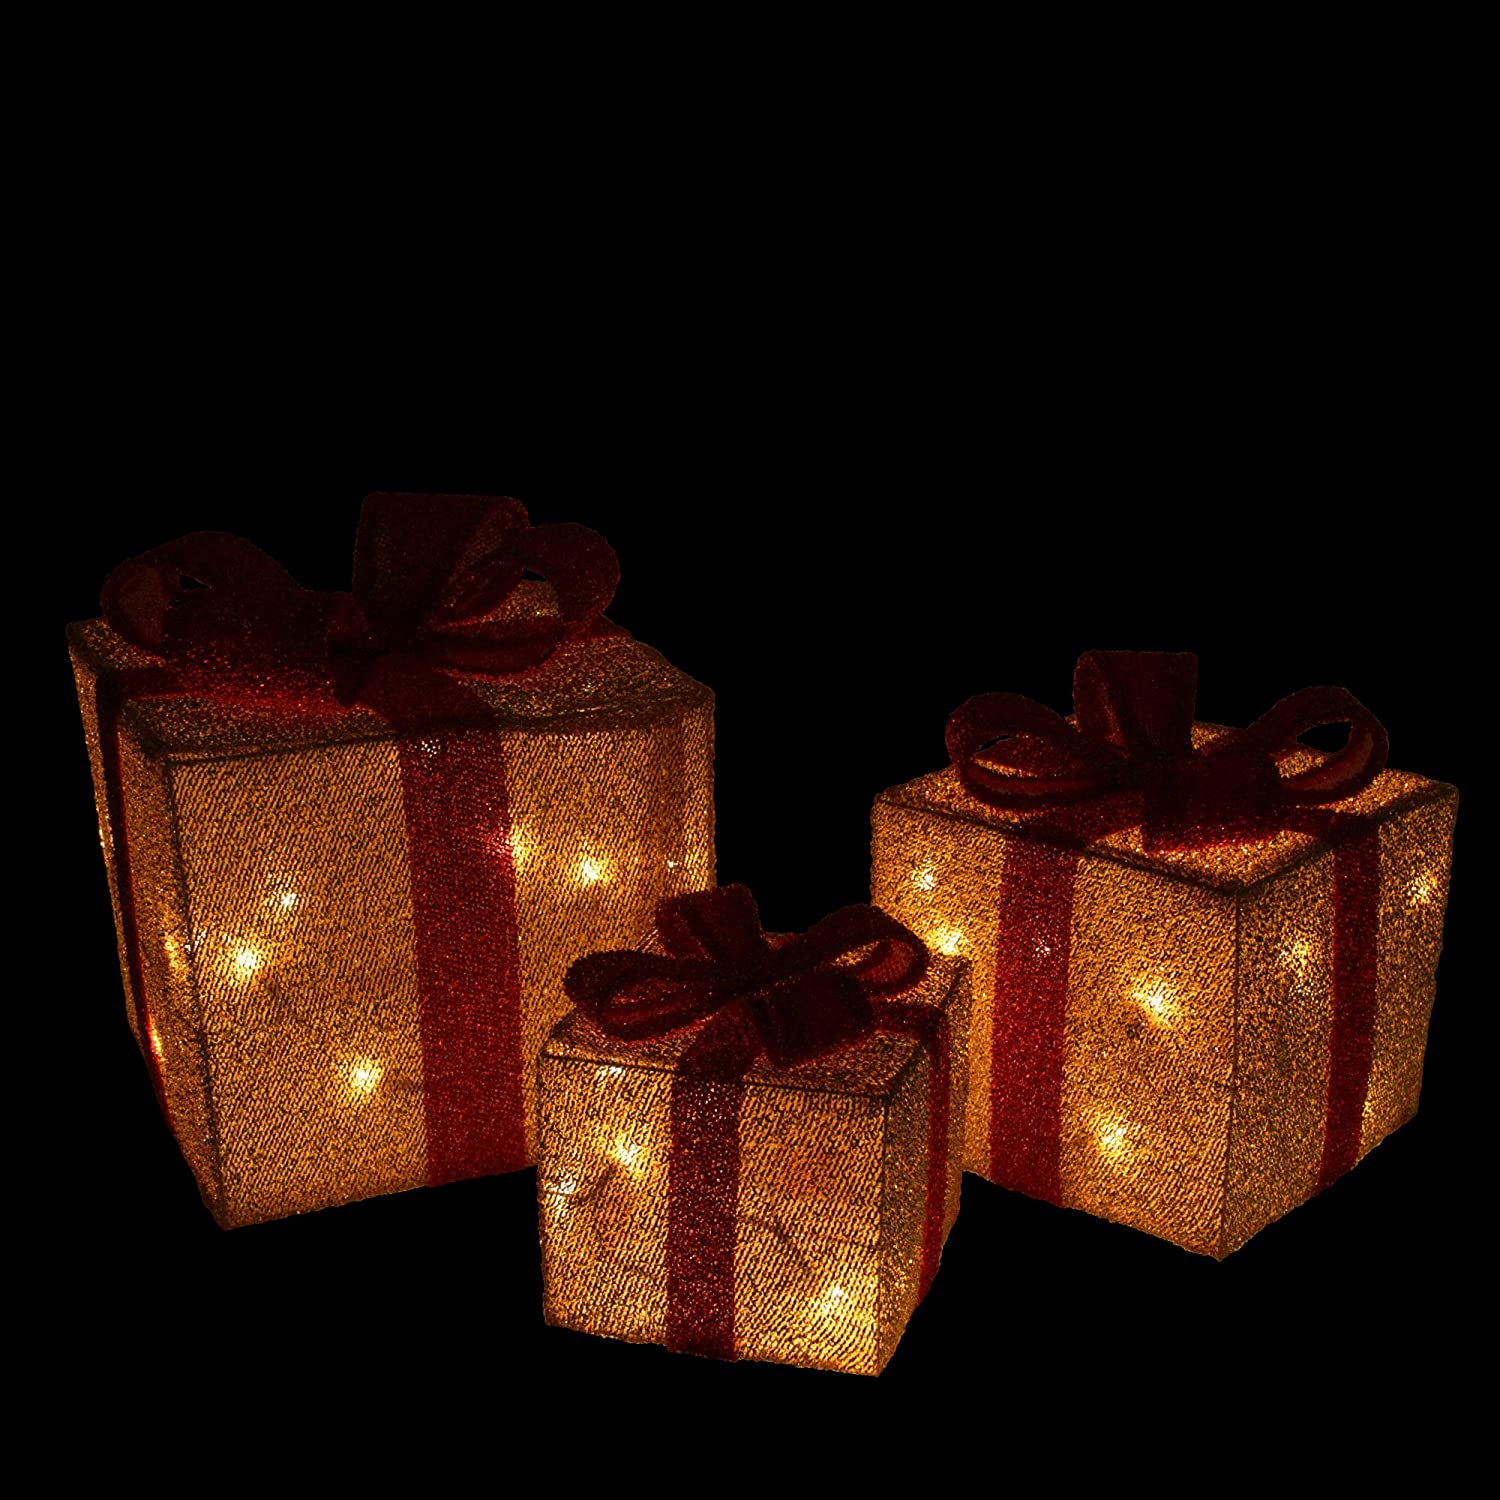 Northlight Set of 3 Gold Tinsel Gift Boxes with Red Bows Lighted Christmas Outdoor Decorations